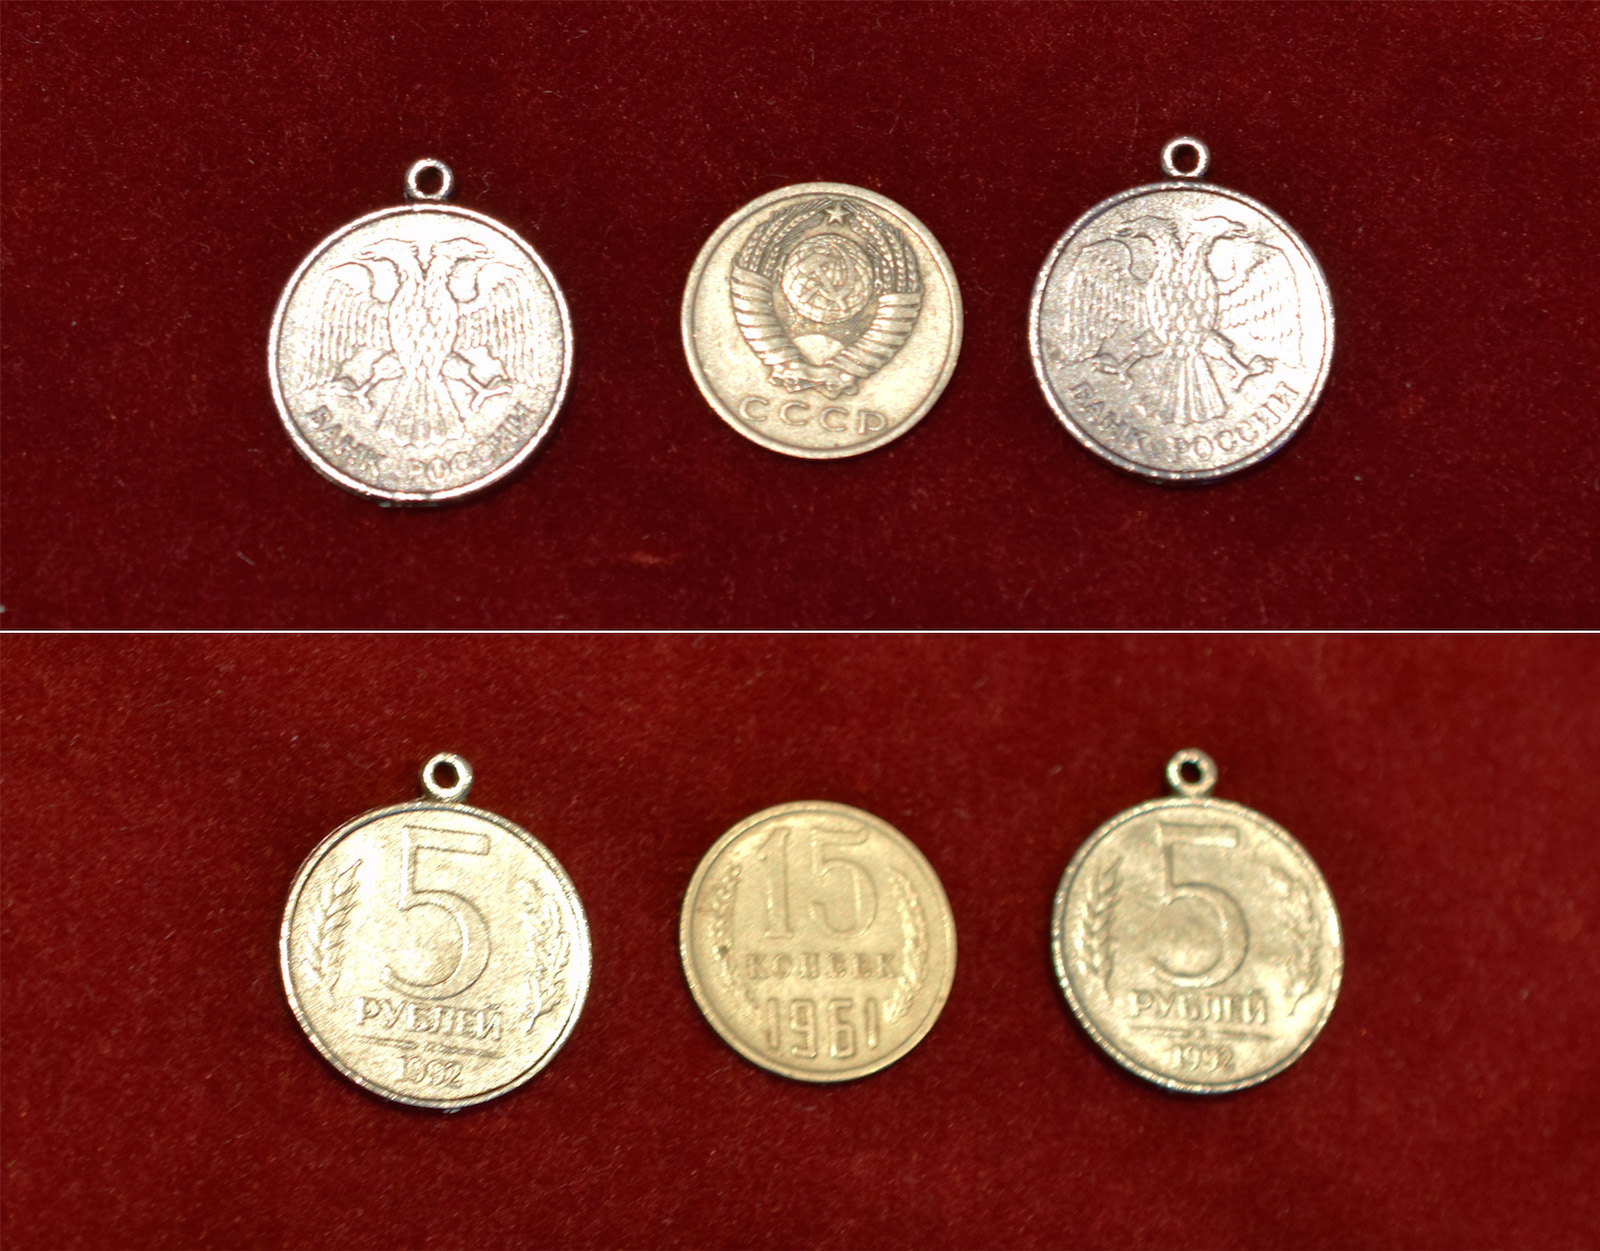 Soviet Ruble Coins